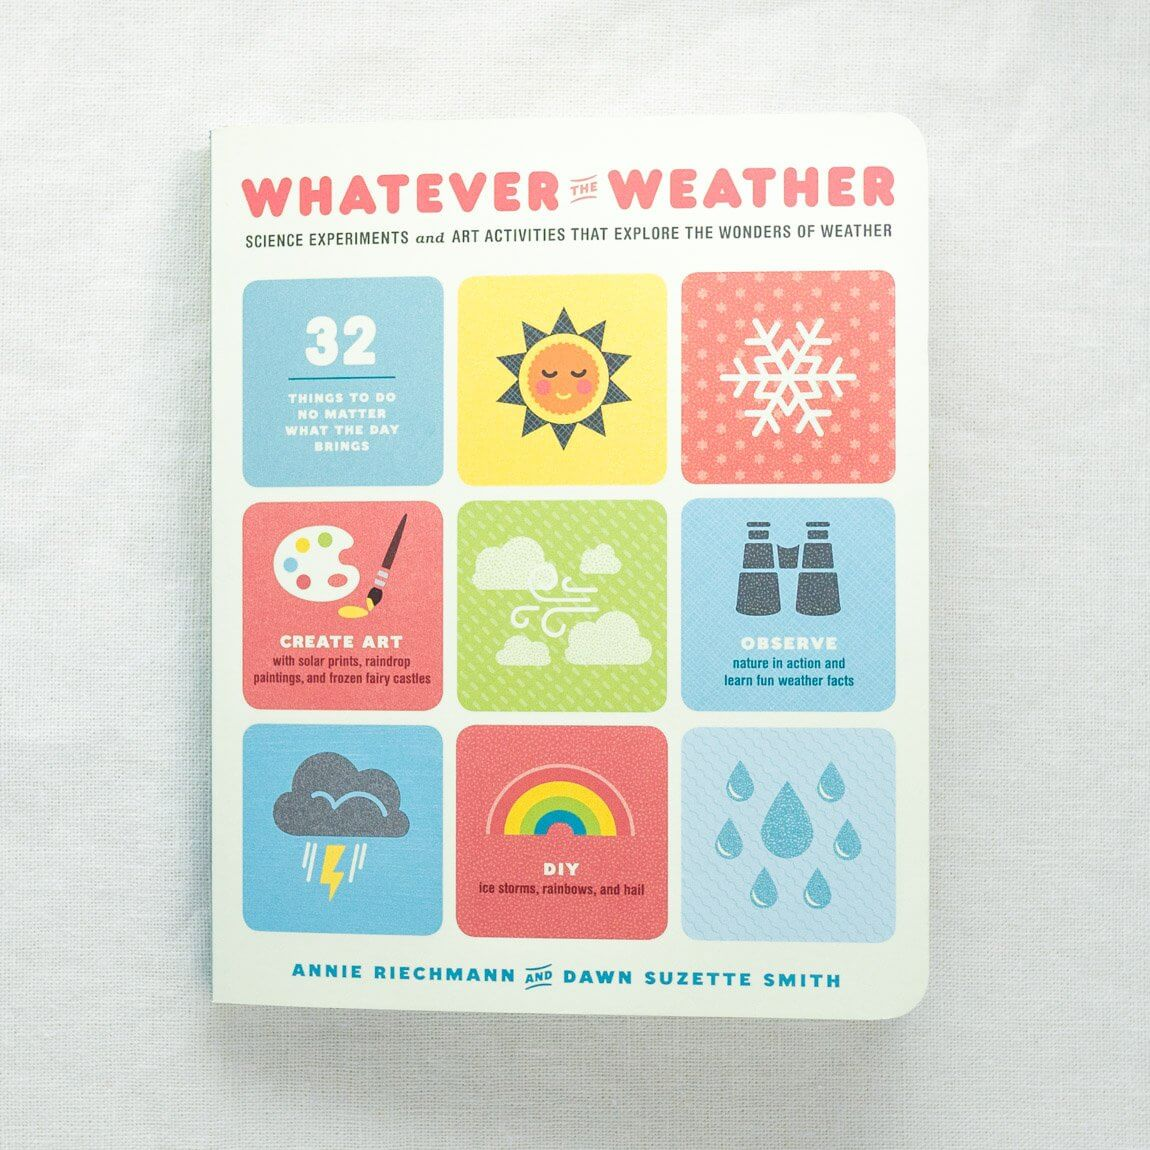 Whatever the Weather